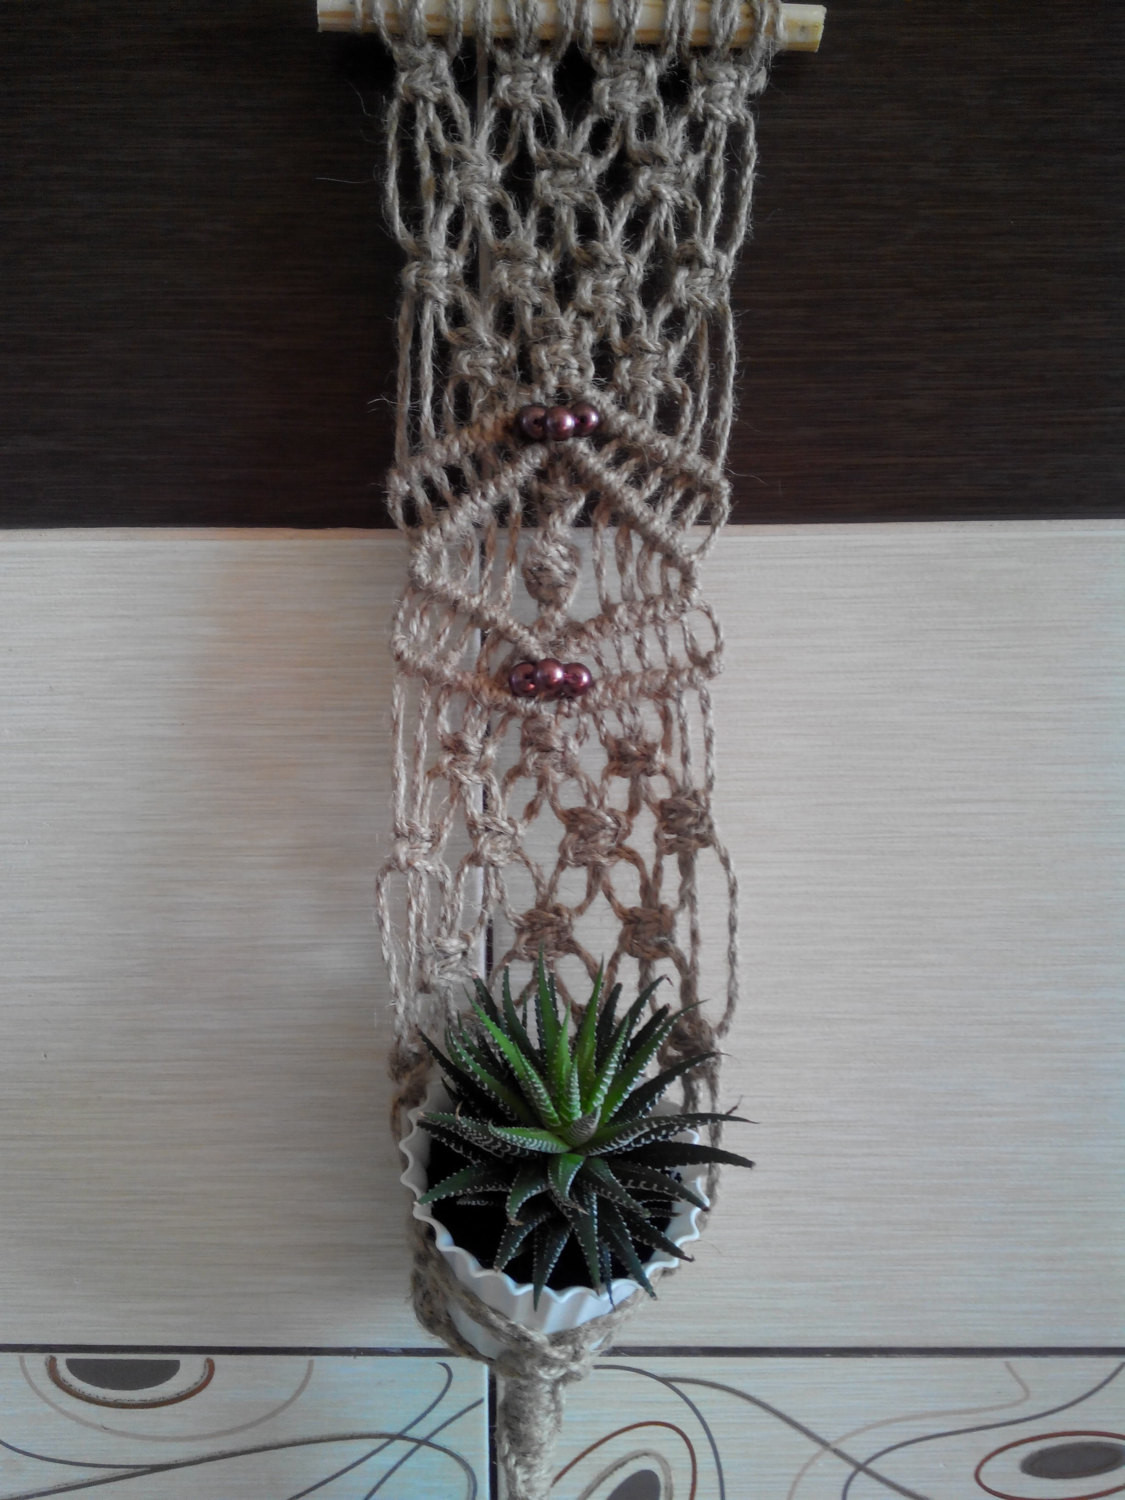 Macrame Plant Holder Inspirational Macrame Plant Hanger Plant Holder Home Decor Macrame Of Luxury 45 Images Macrame Plant Holder